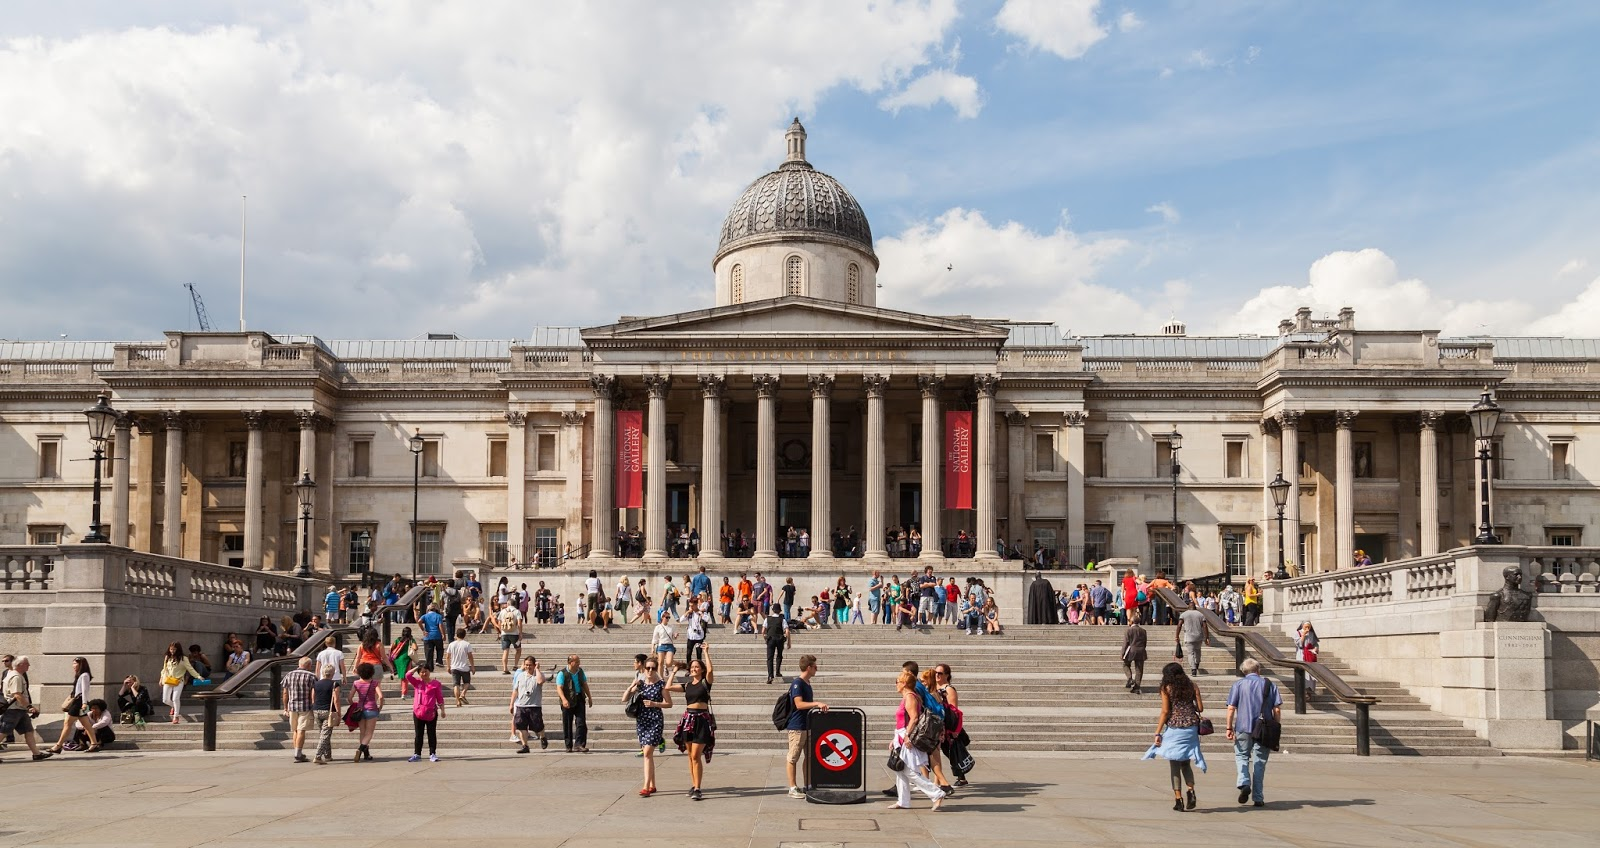 These Are The 25 Best Museums In The World - National Gallery